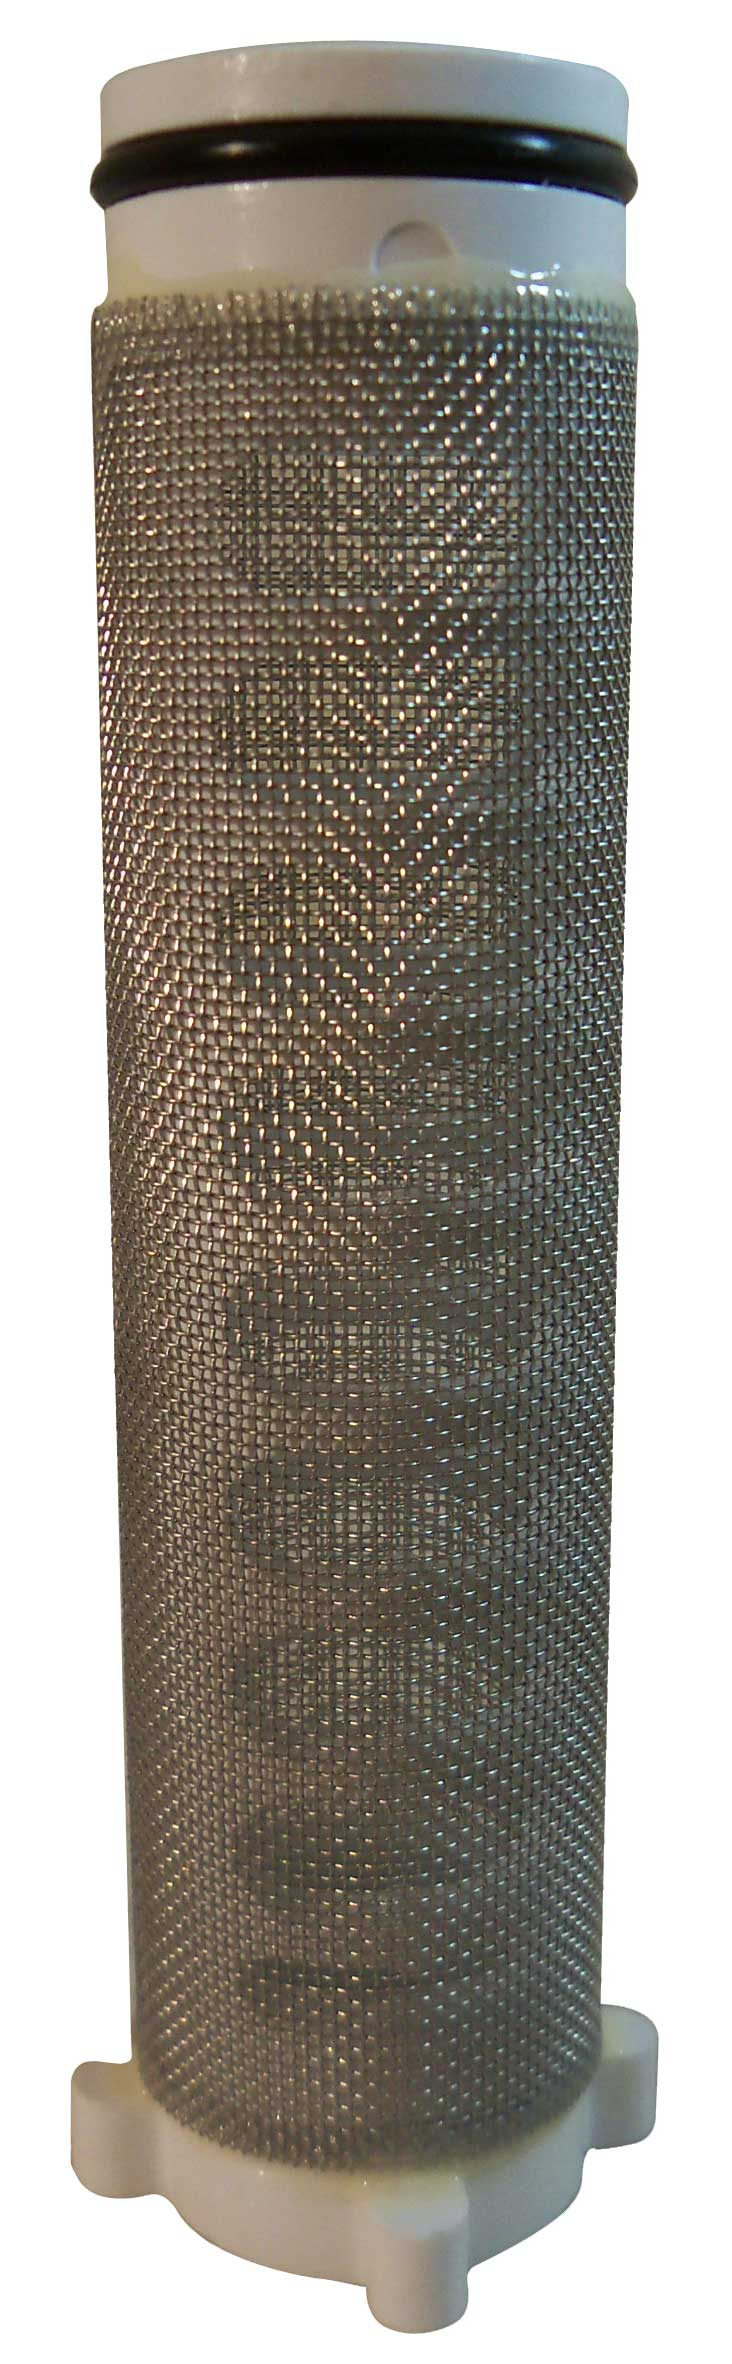 "Stainless Steel Filter Screen for Rusco Hot Water Spin Down 3/4"" 30 Mesh"